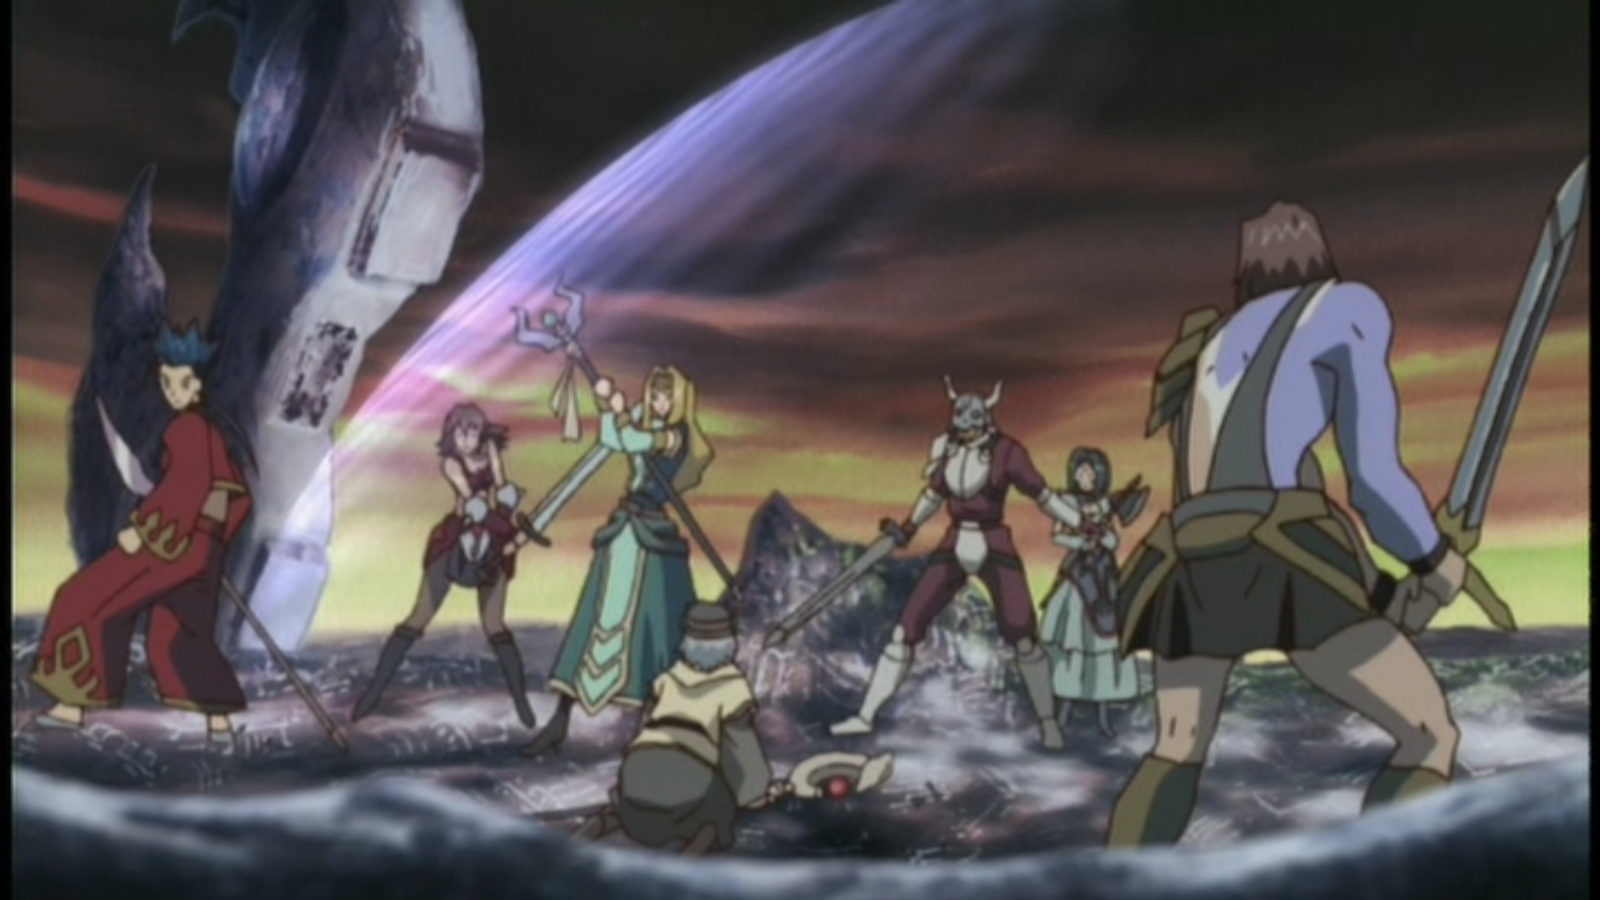 The characters of .Hack//Sign: (from left to right) Crim, Mimiru, BT, Tsukasa, Silver Knight, Subaru, and Bear. Not pictured: Sora, because he was being a douche at the time.